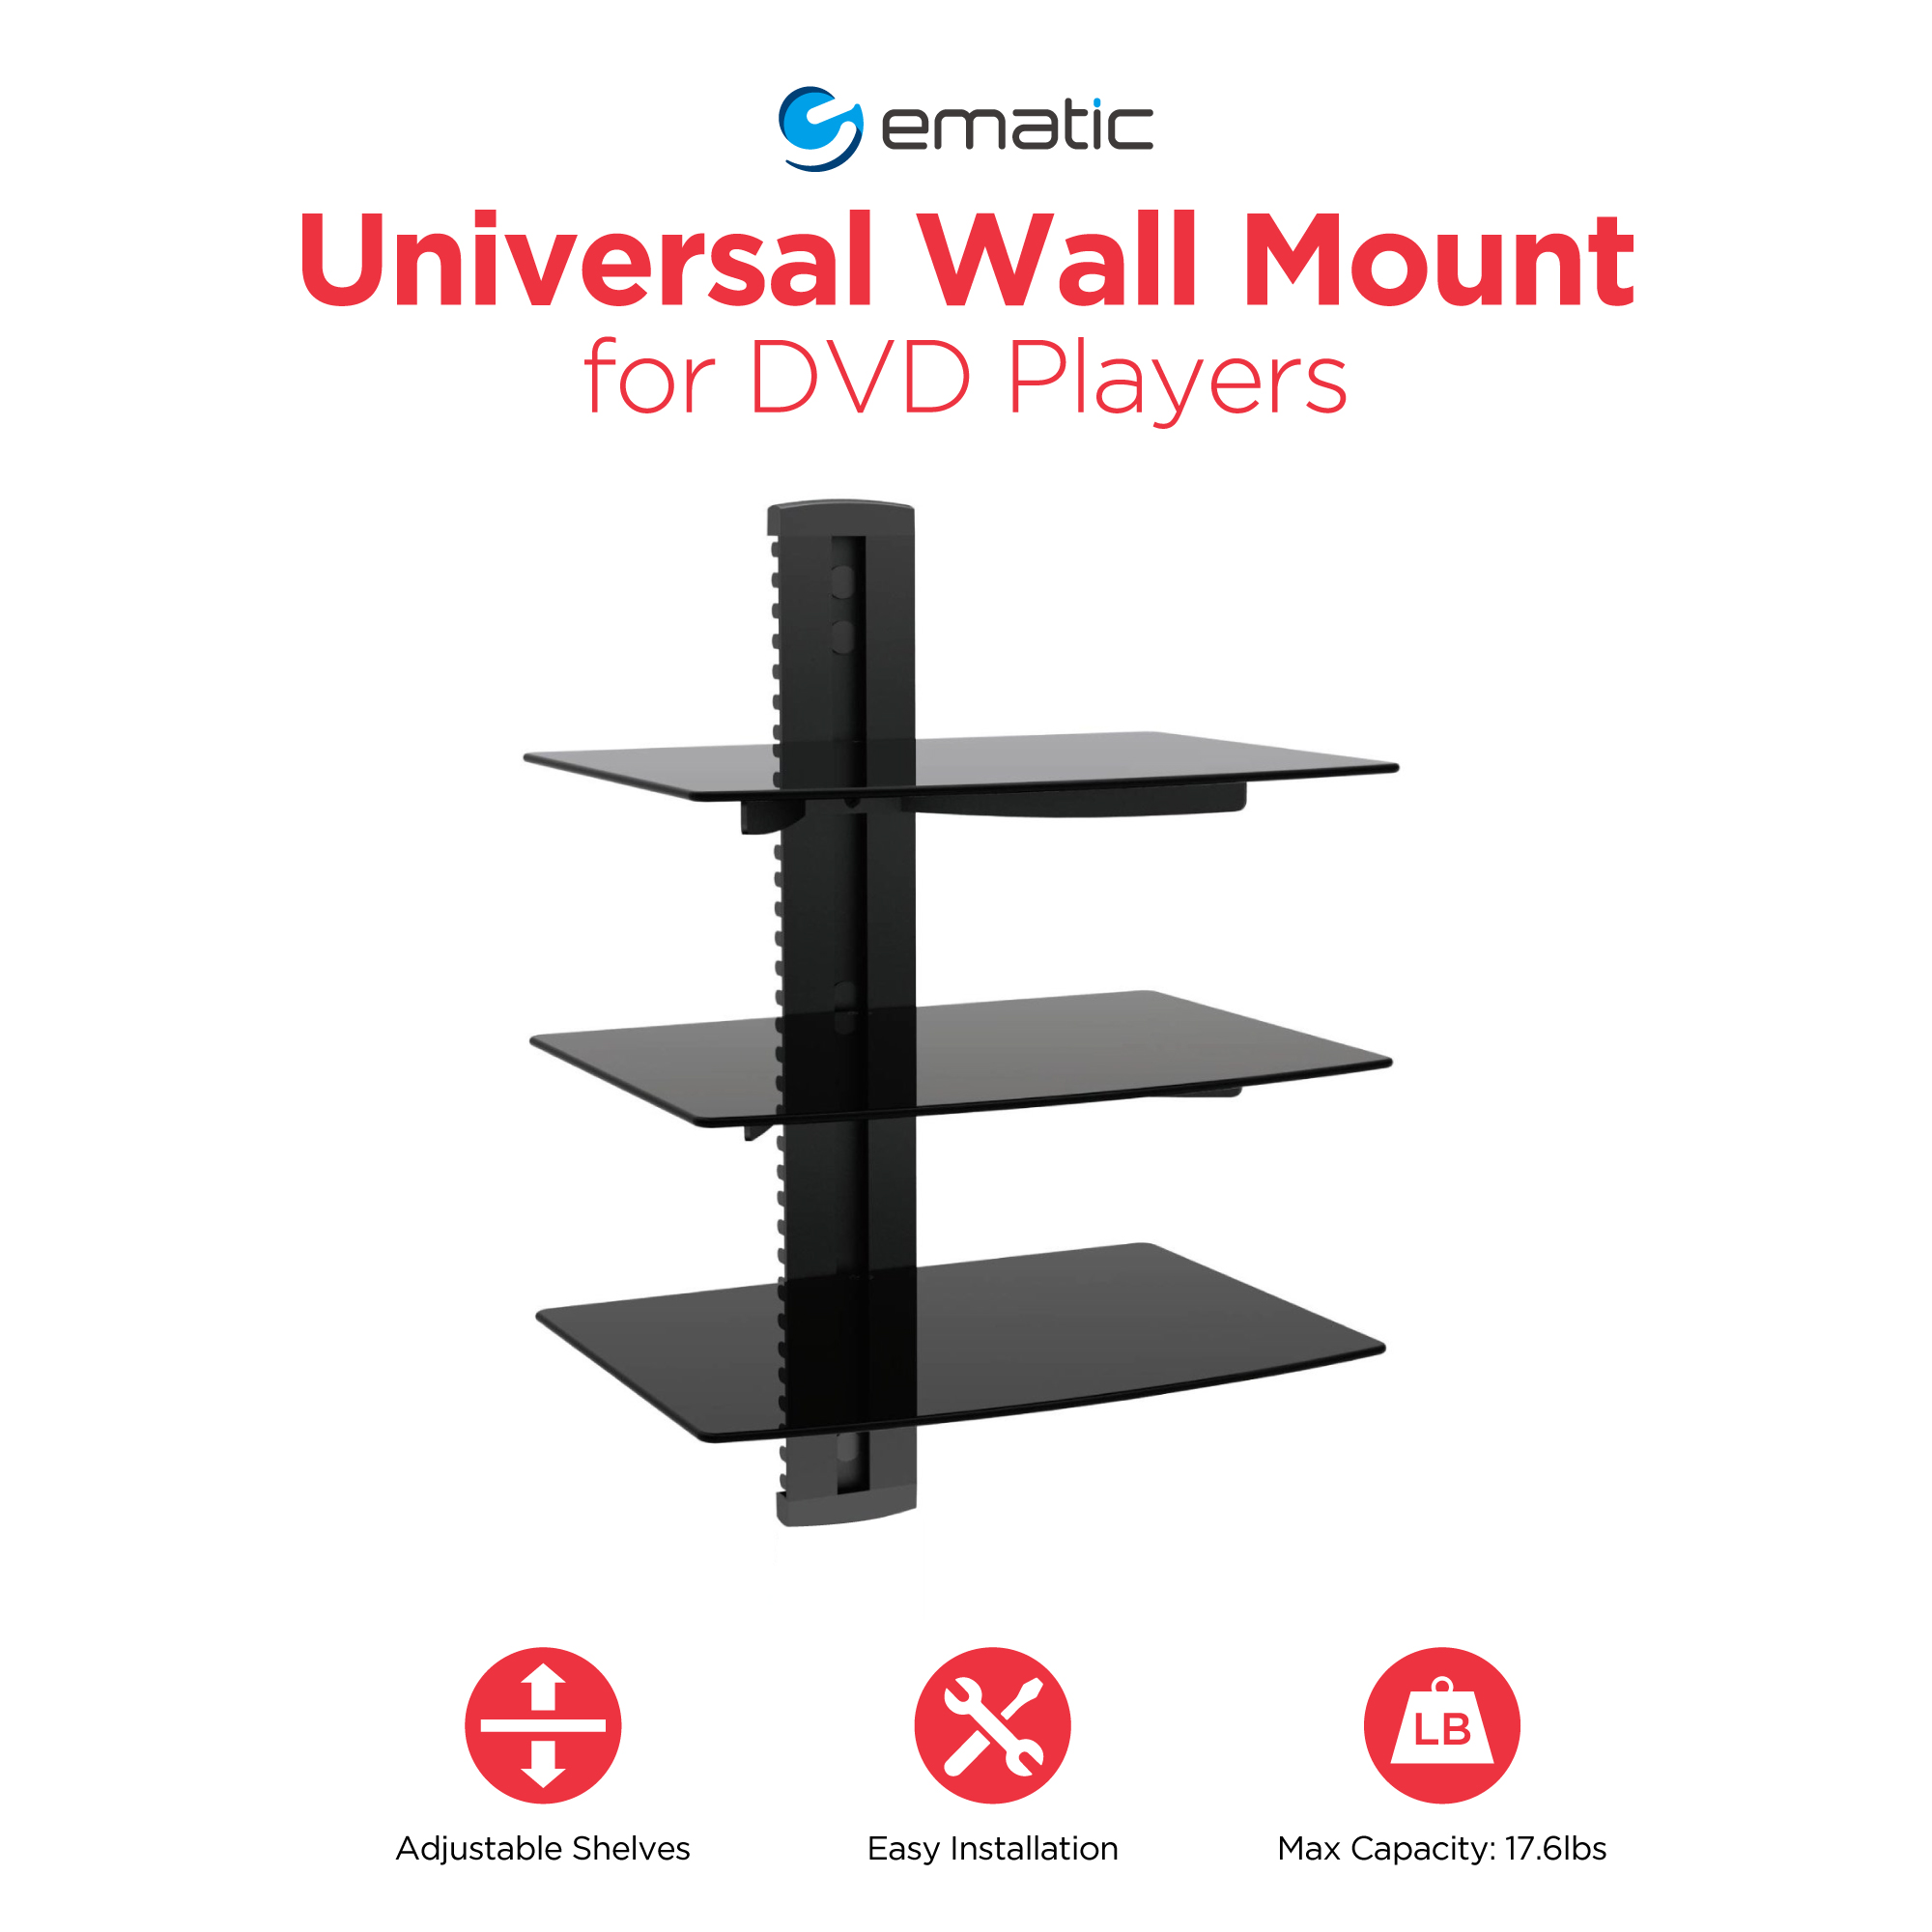 ematic adjustable shelf universal dvd player wall mount floating glass open cabinet design metal brackets shower tray seal oak wood fireplace mantels shelving unit for mantel